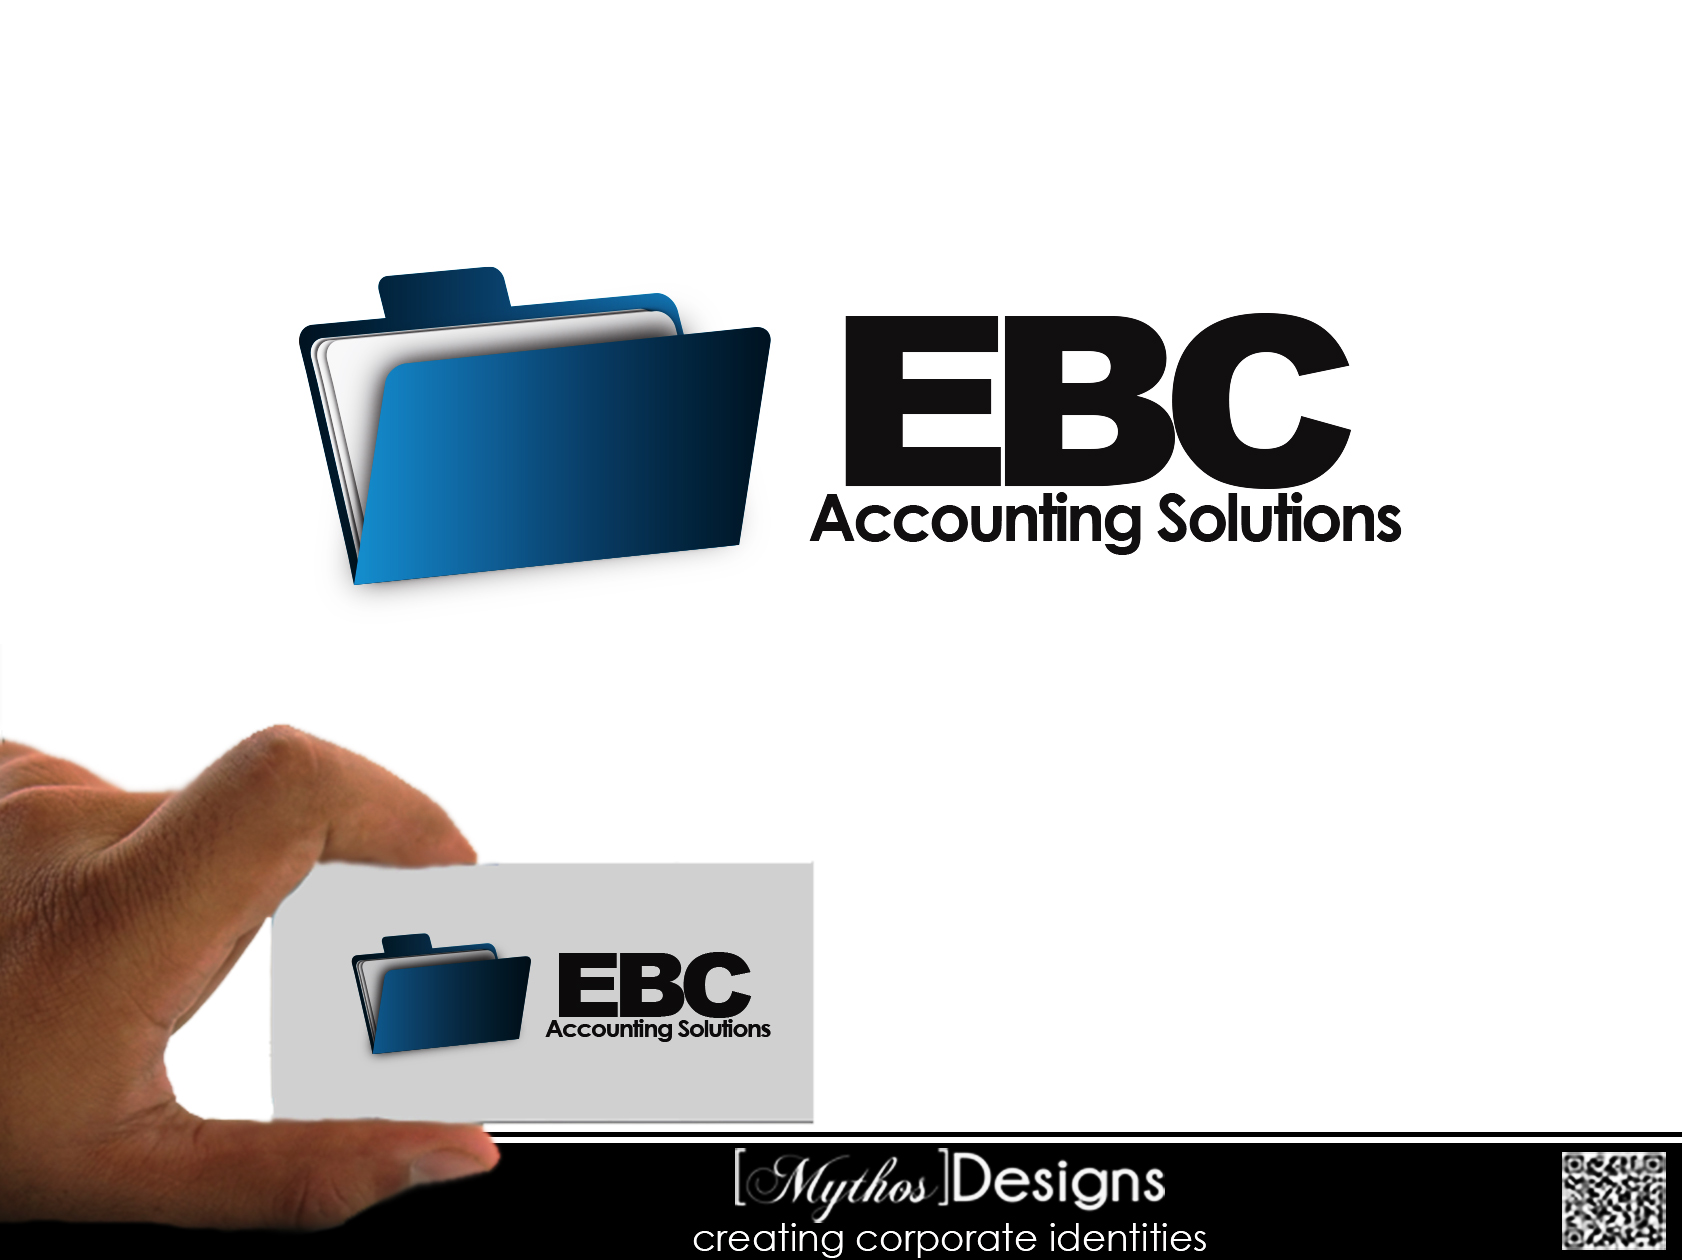 Logo Design by Mythos Designs - Entry No. 17 in the Logo Design Contest New Logo Design for EBC Accounting Solutions.